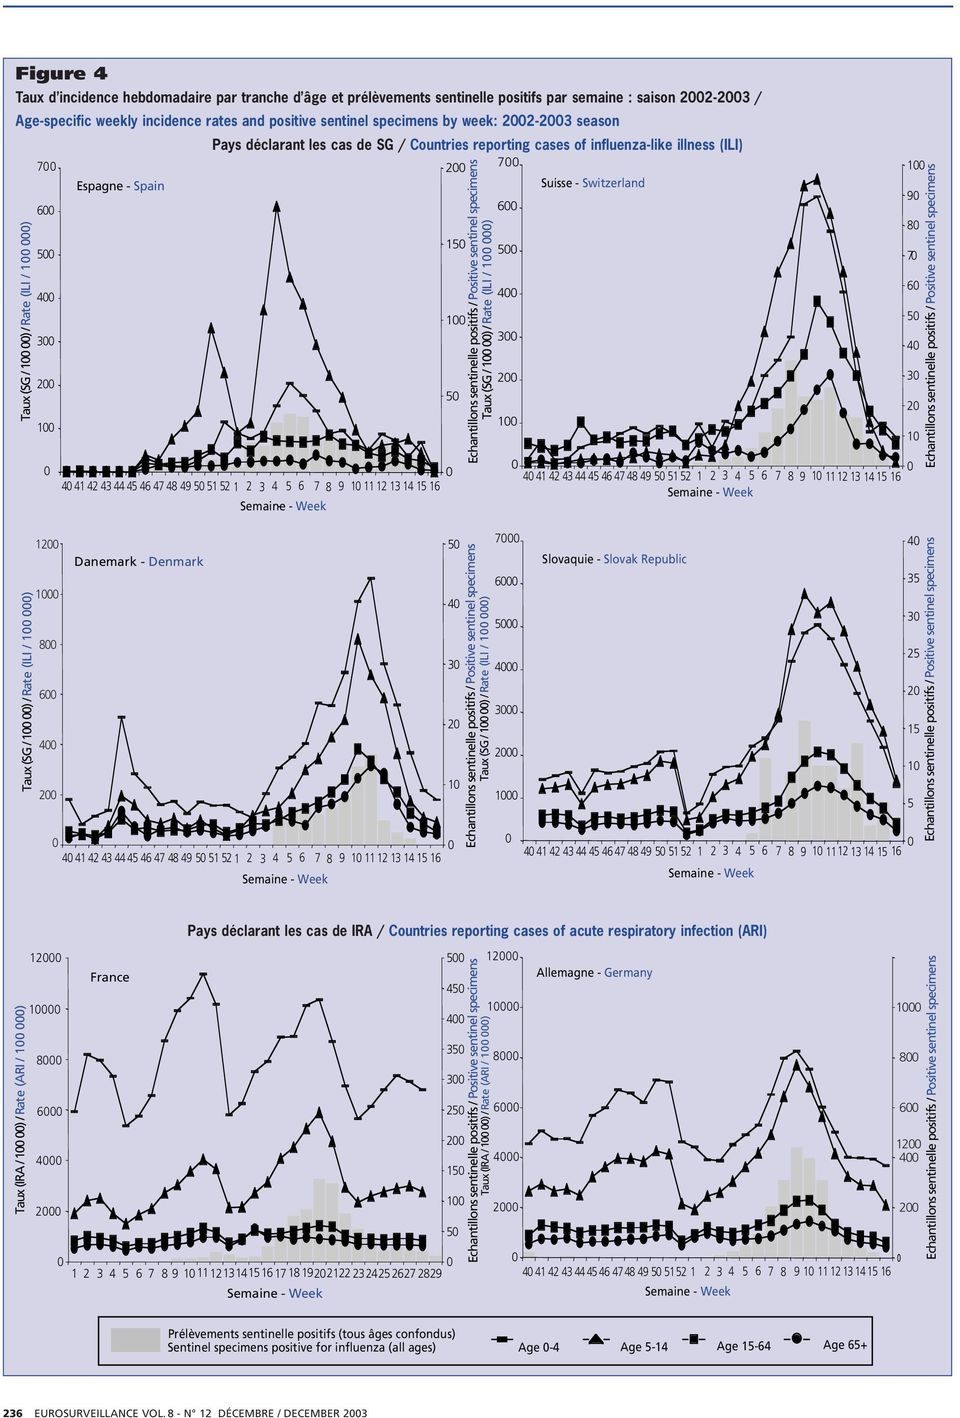 weekly incidence rates and positive sentinel specimens by week: 22-23 season Pays déclarant les cas de SG / Countries reporting cases of influenza-like illness (ILI) 7 2 7 Espagne - Spain Suisse -